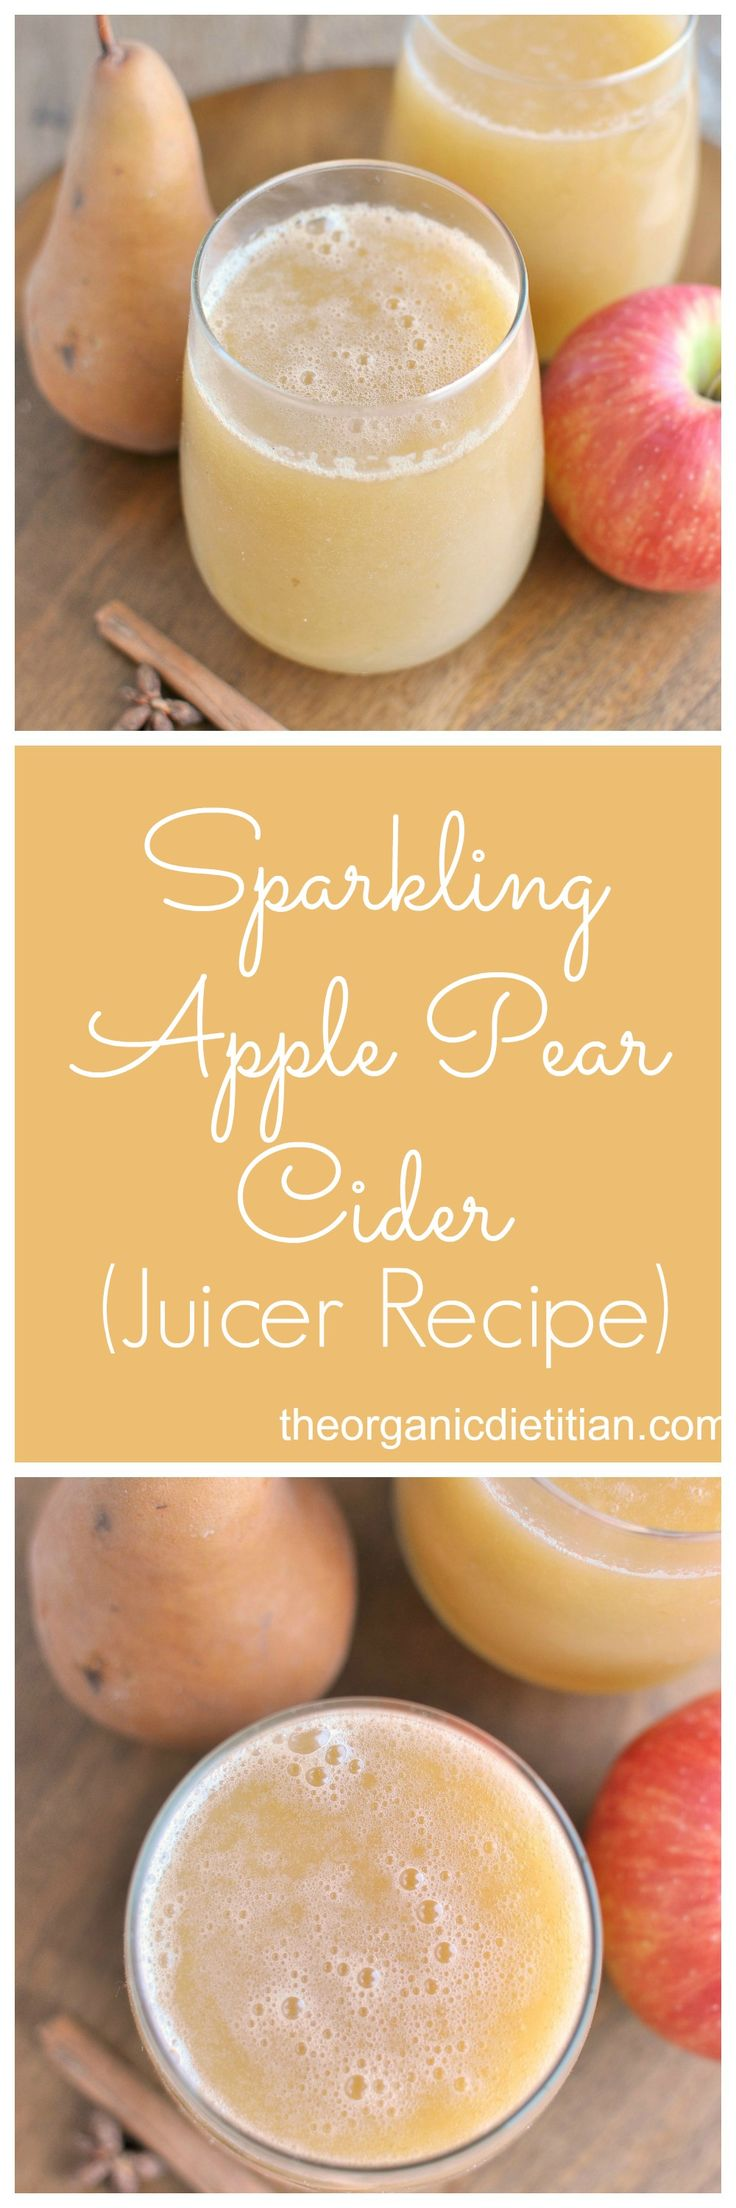 Sparkling apple-pear cider